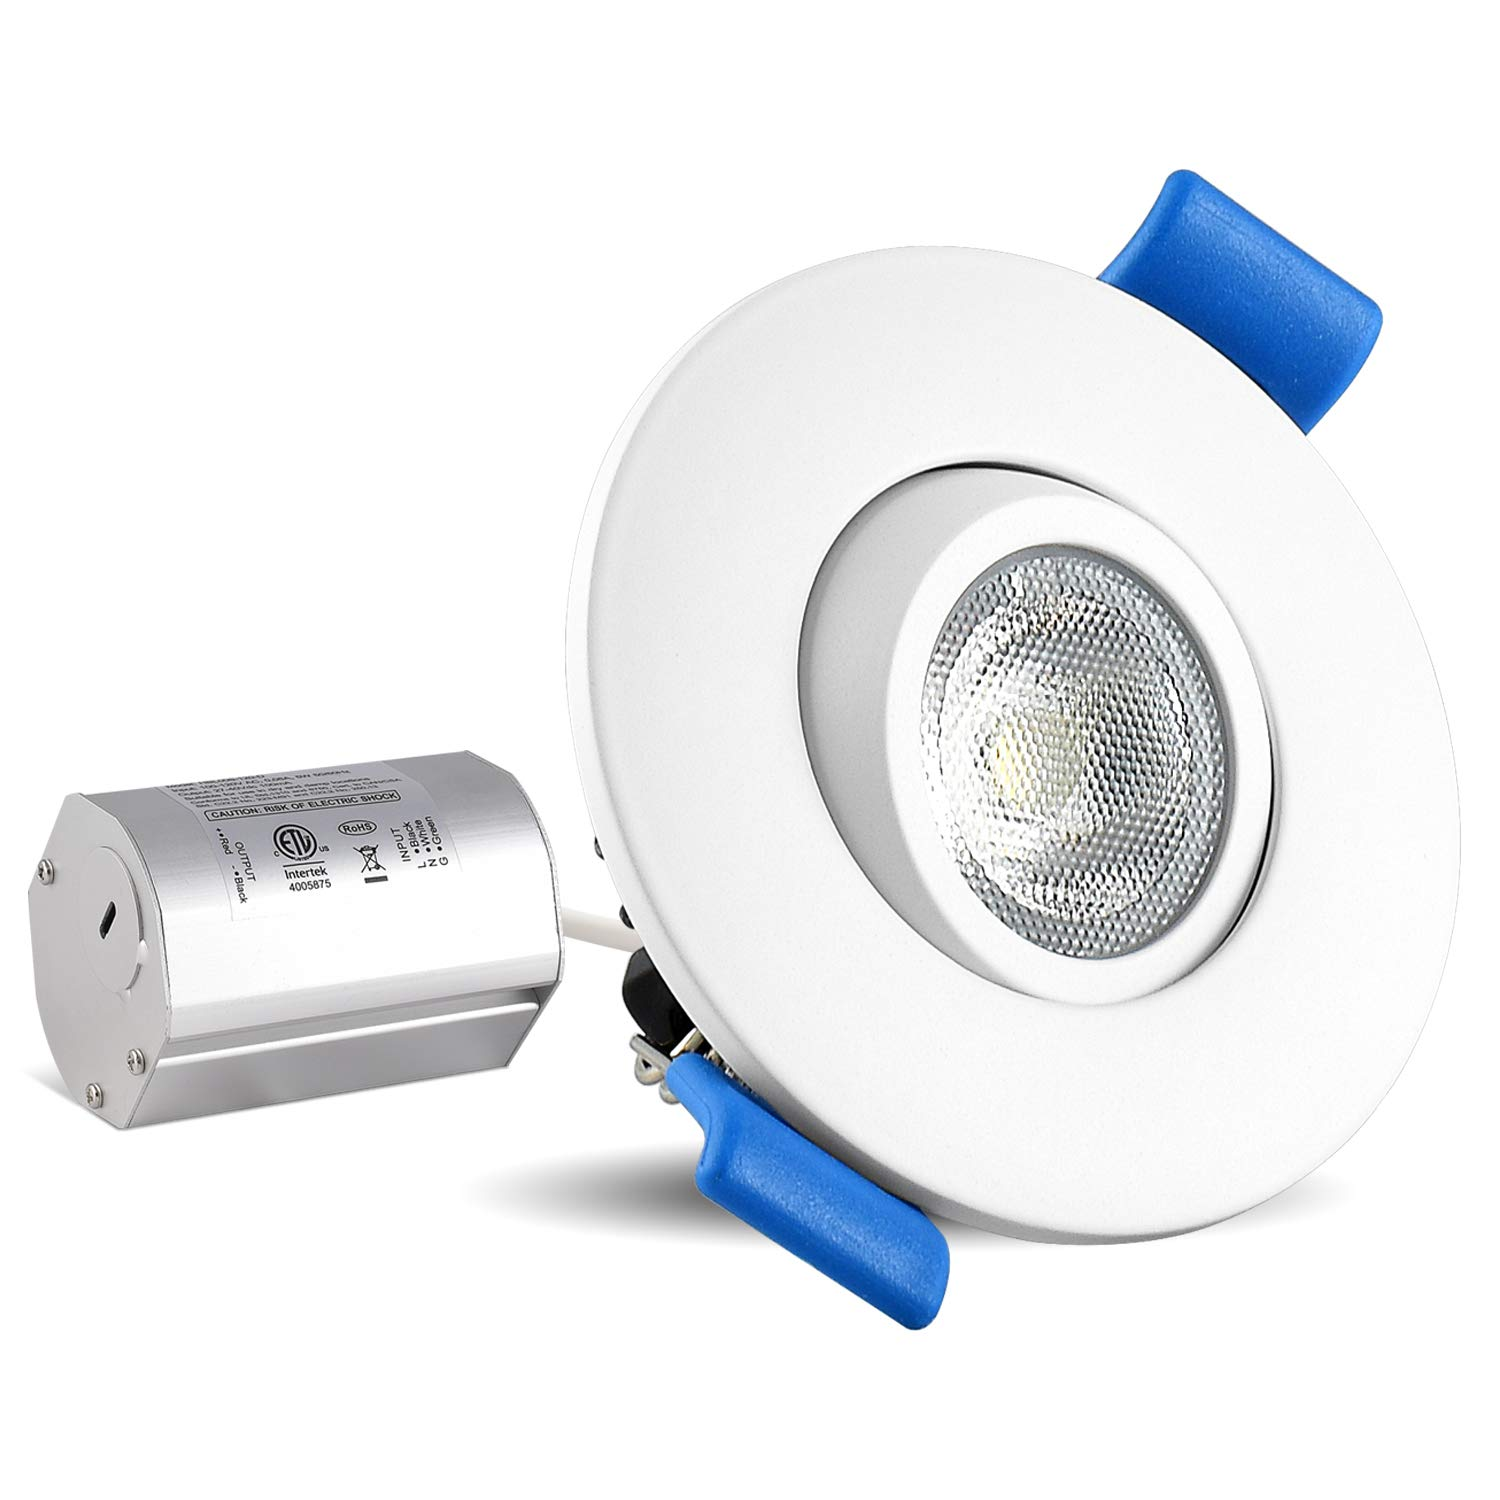 Luxrite 2 Inch Gimbal LED Recessed Light with Junction Box, 5W, 3000K Soft White, 400 Lumens, Dimmable Downlight, Energy Star & IC Rated, Damp Location - Adjustable Recessed Lighting